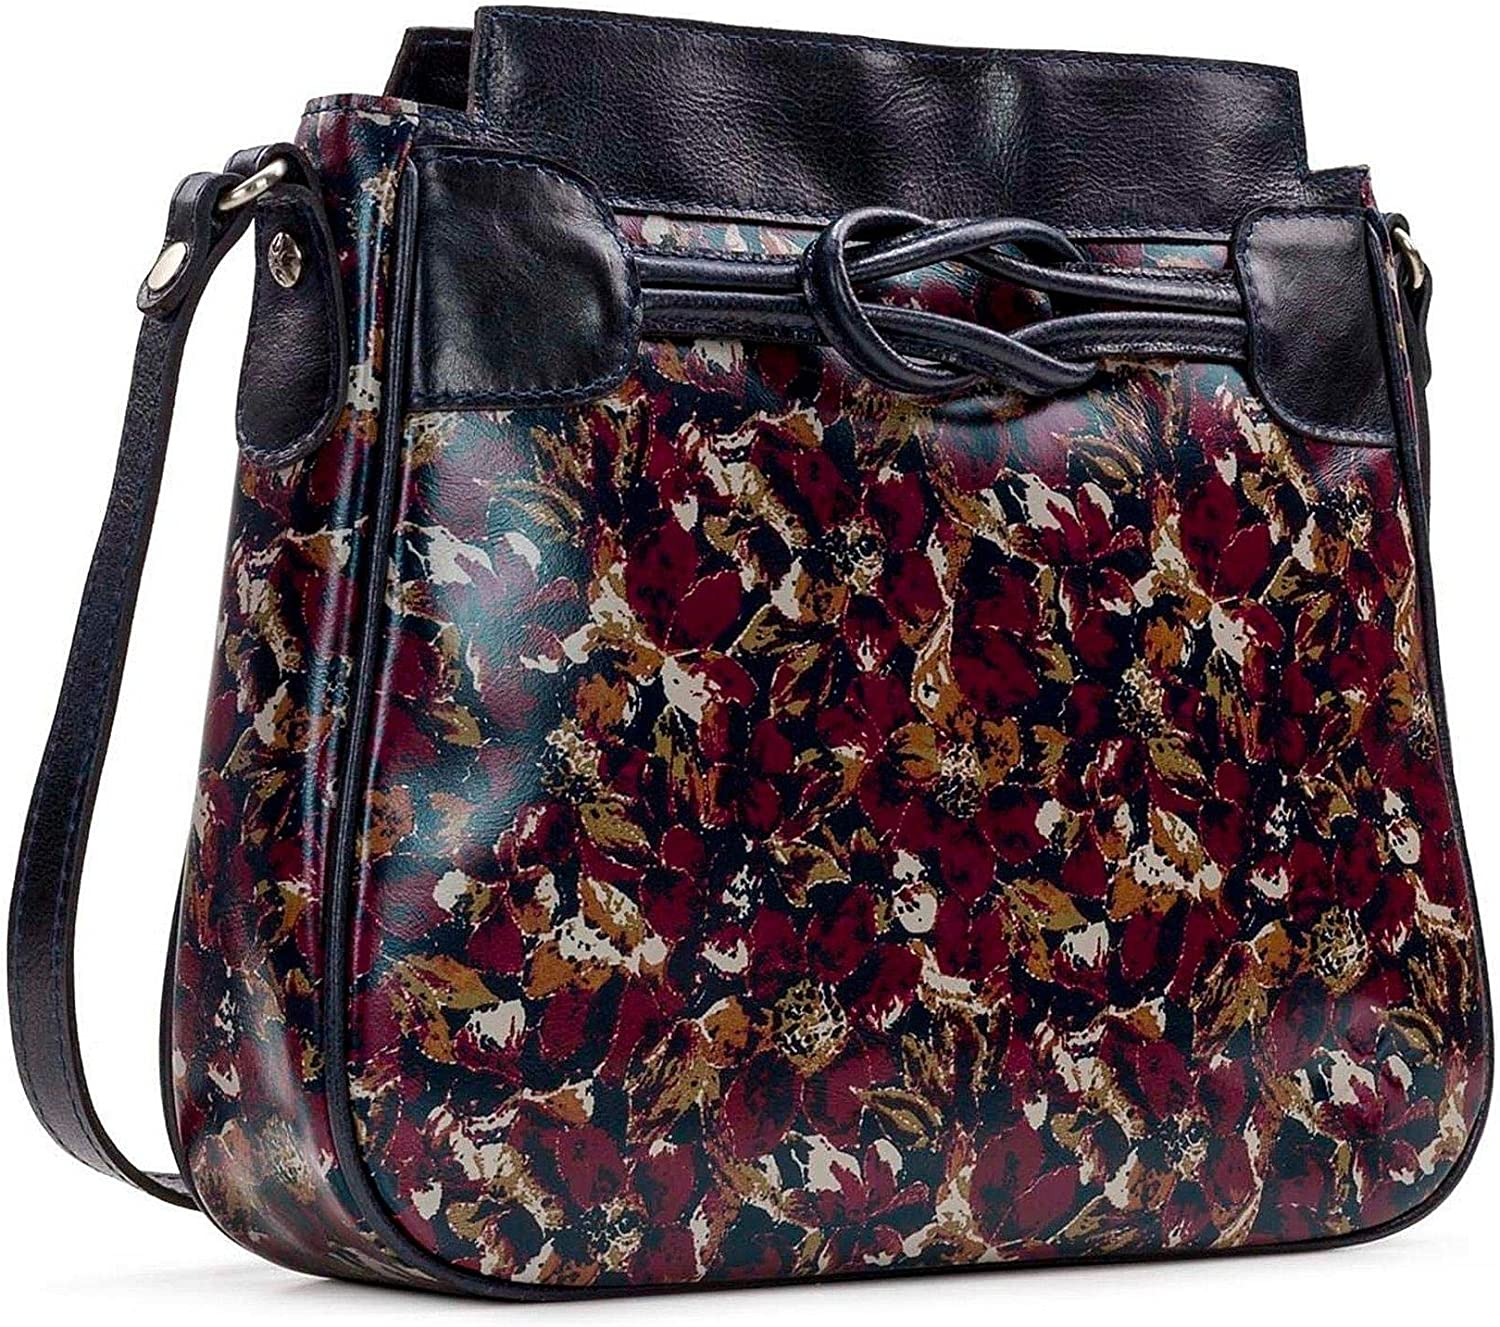 Patricia Nash Scarlet Special price for a limited time Max 77% OFF Bloom Collection Bag Antilly Sling Leather